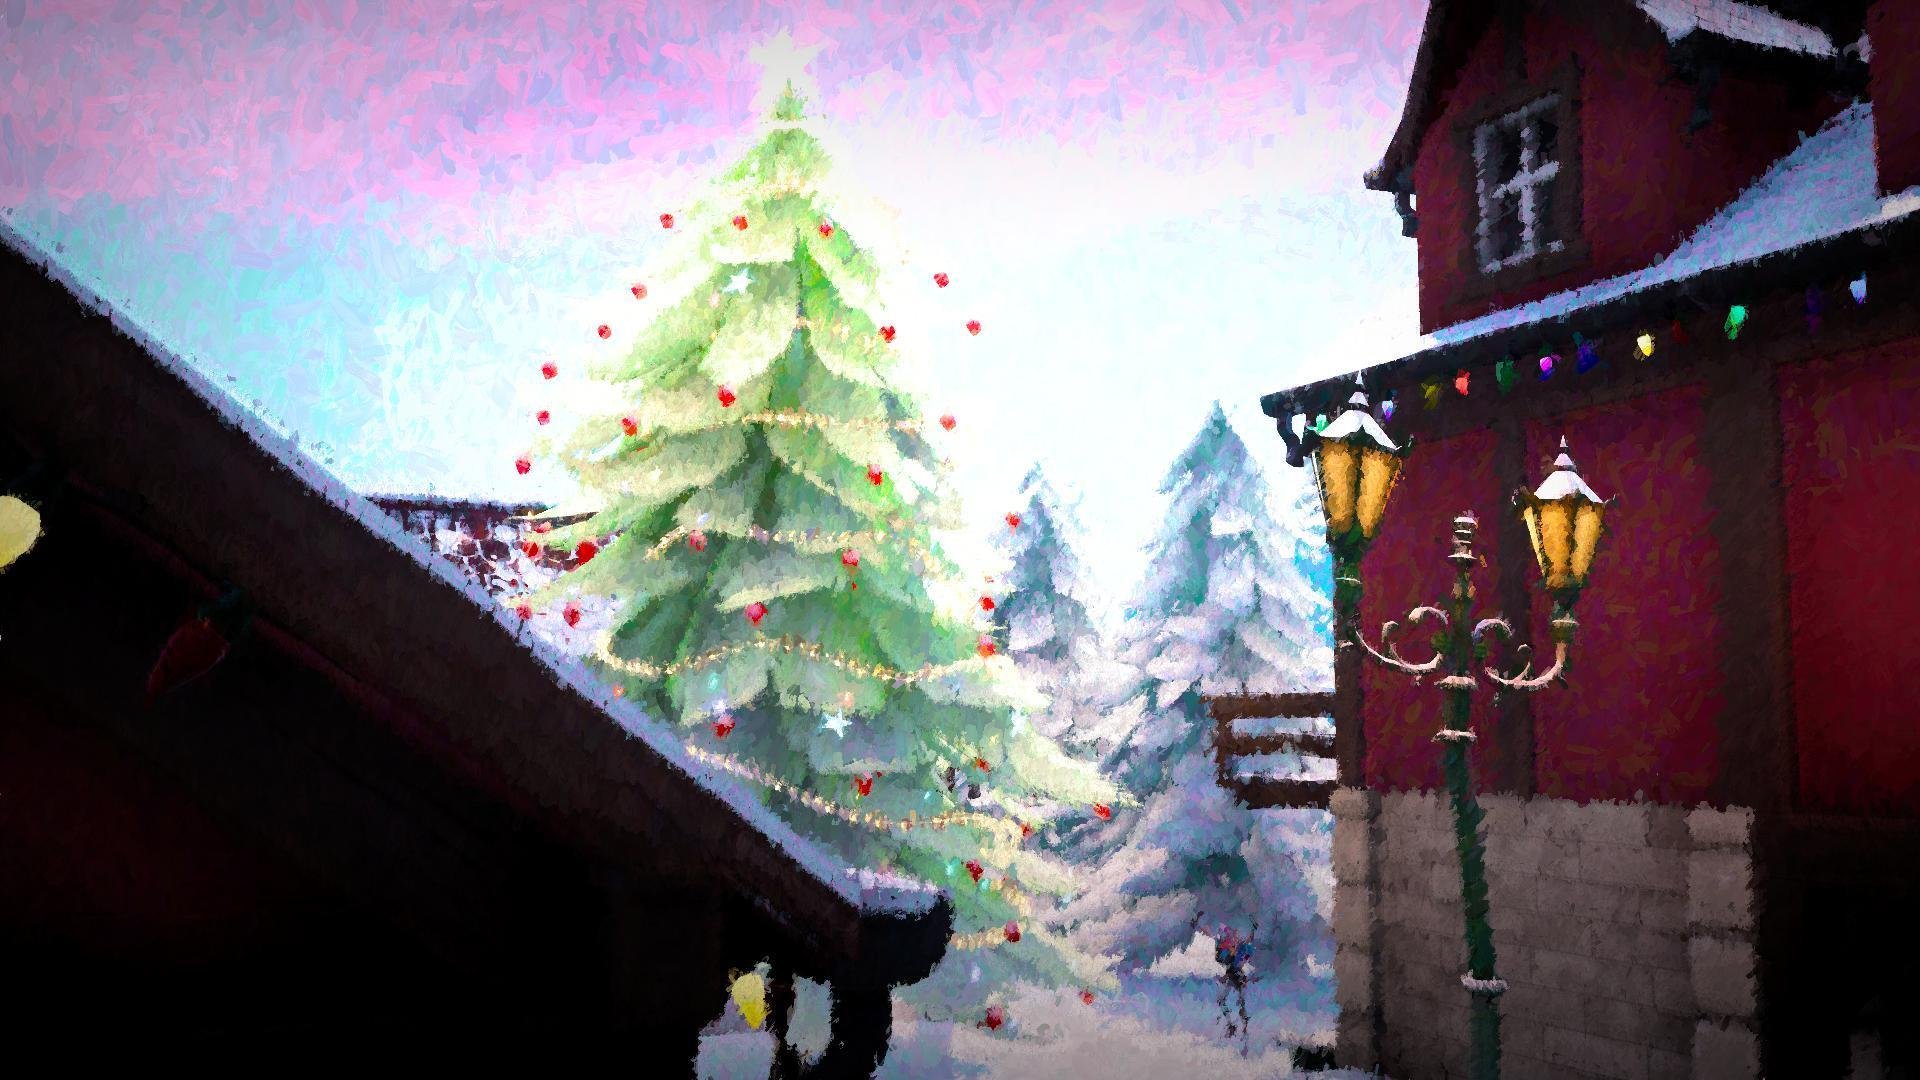 Fortnite Christmas Background Png.Christmas Fortnite Battle Royale Wallpapers Top Free